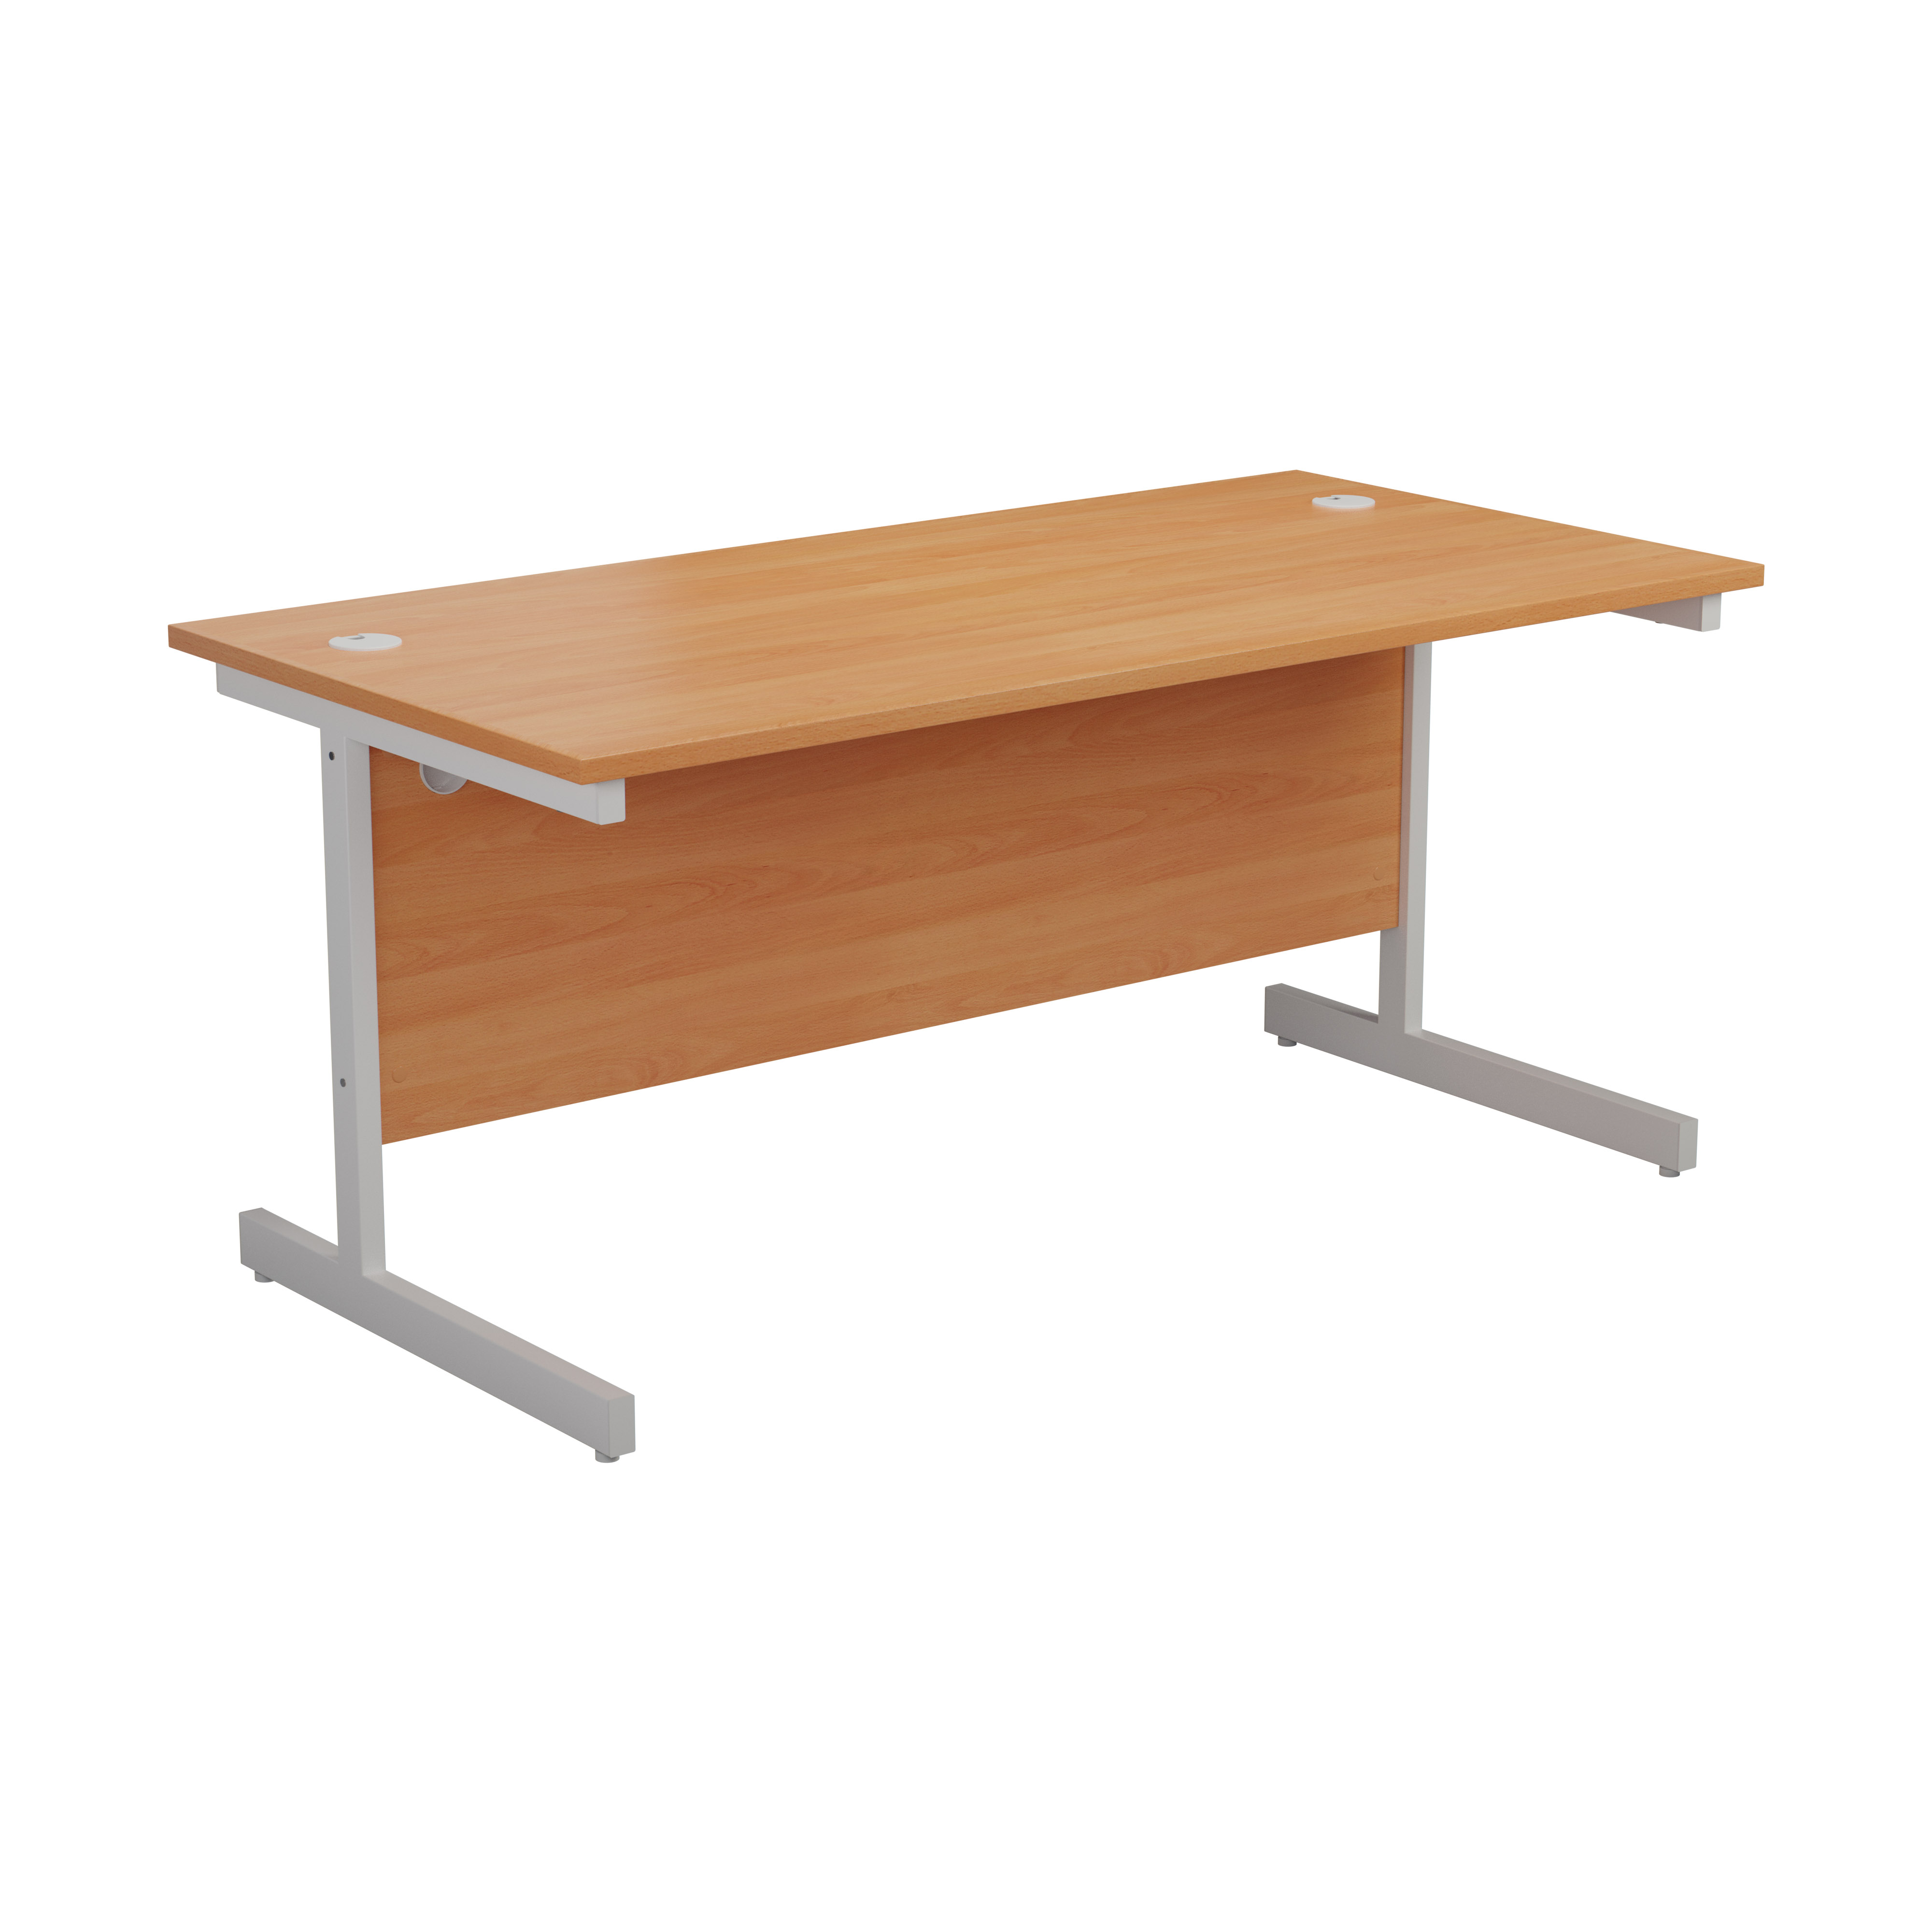 Essentials - 1600mm Rectangular Desk